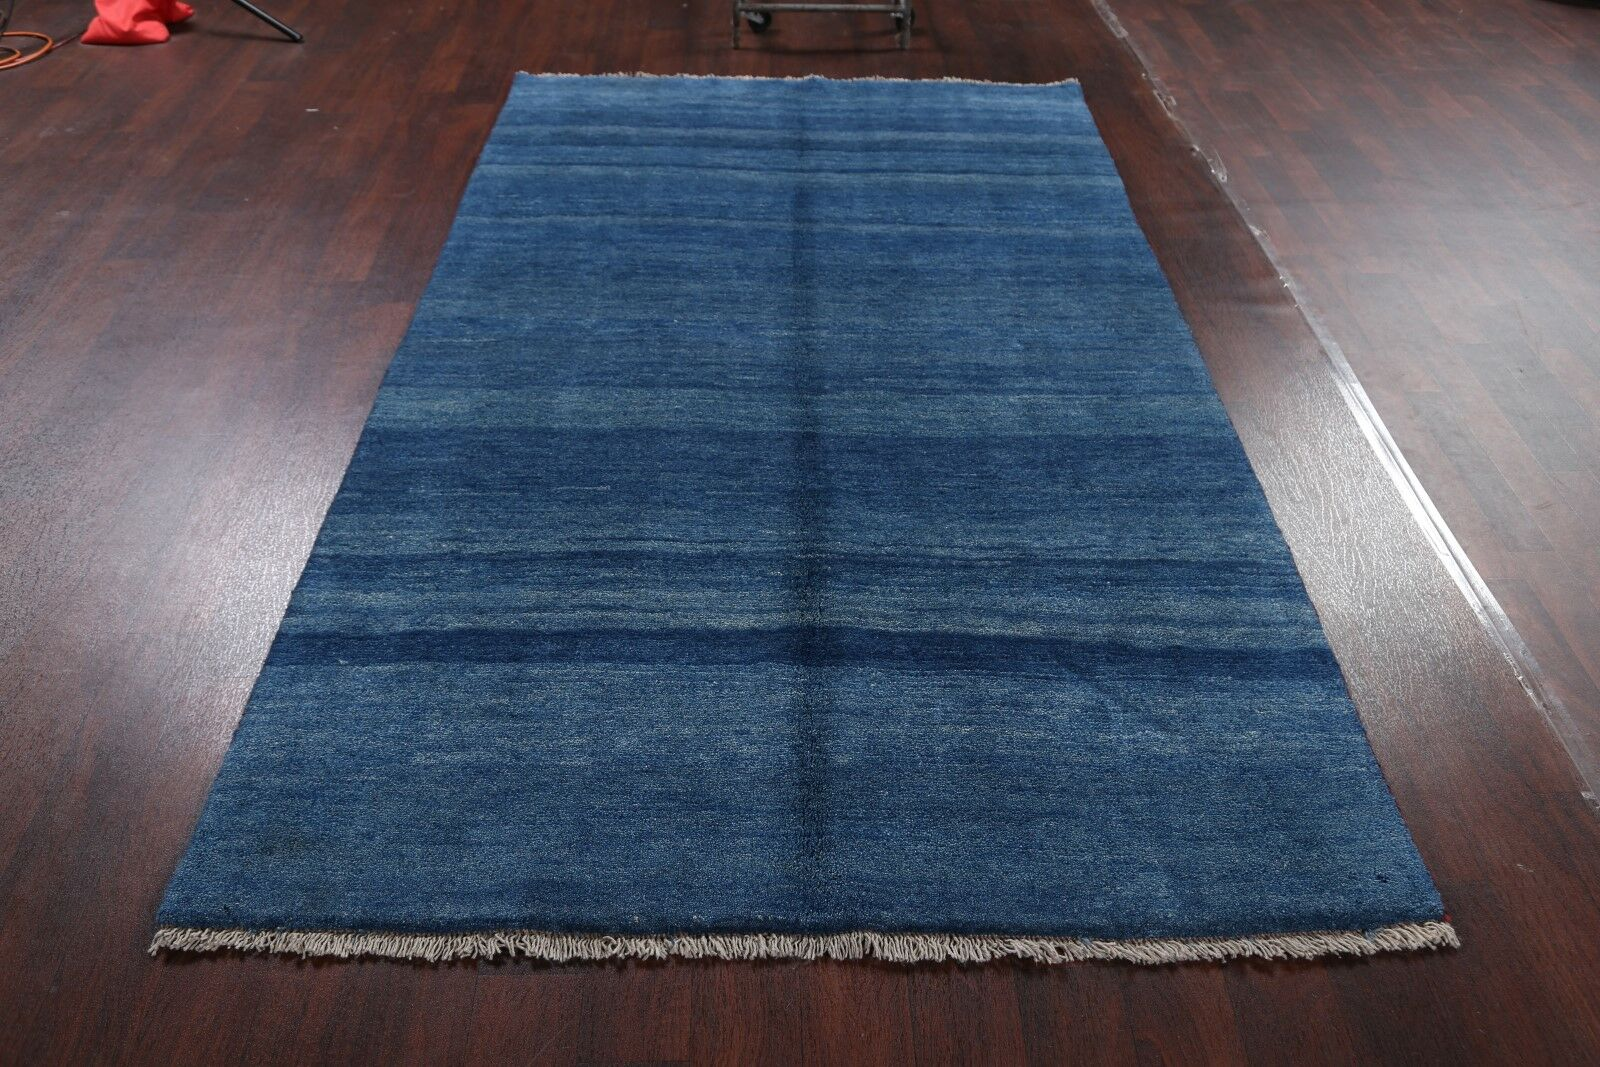 One-of-a-Kind Shiraz Gabbeh Persian Traditional Hand-Knotted 5'2